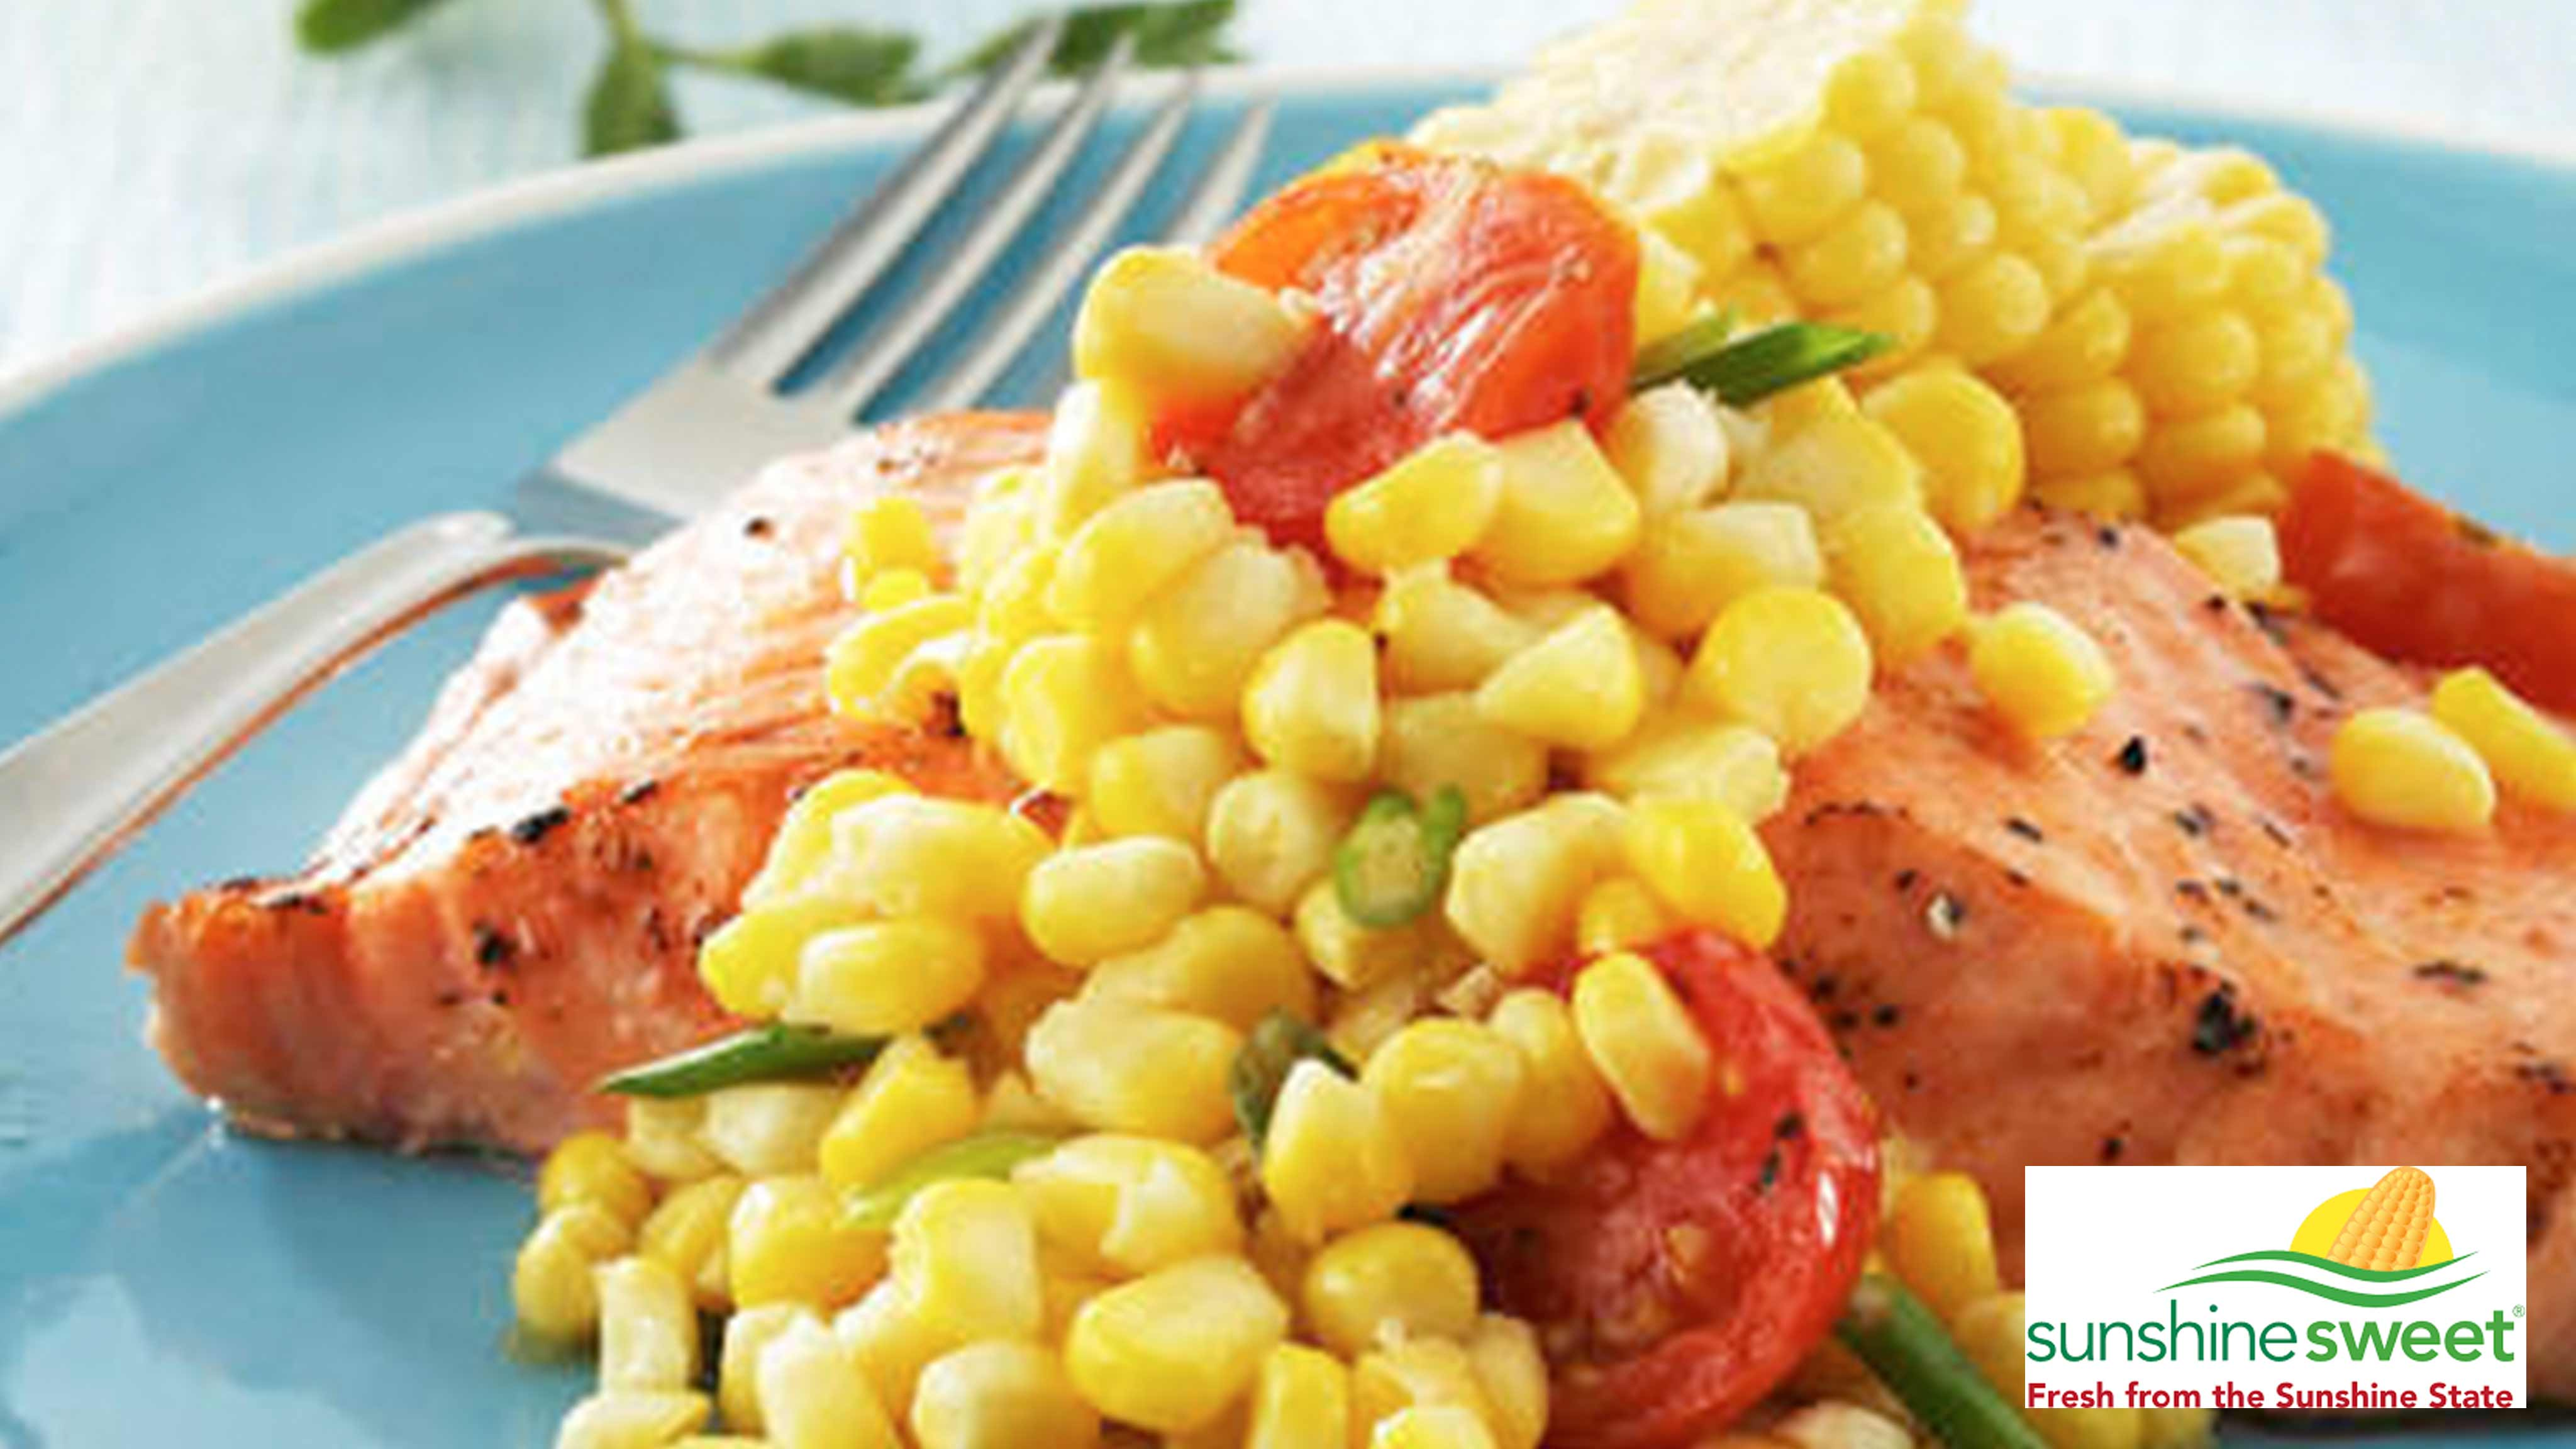 Image for Recipe Sweet Corn and Tomato Saute with Grilled Salmon